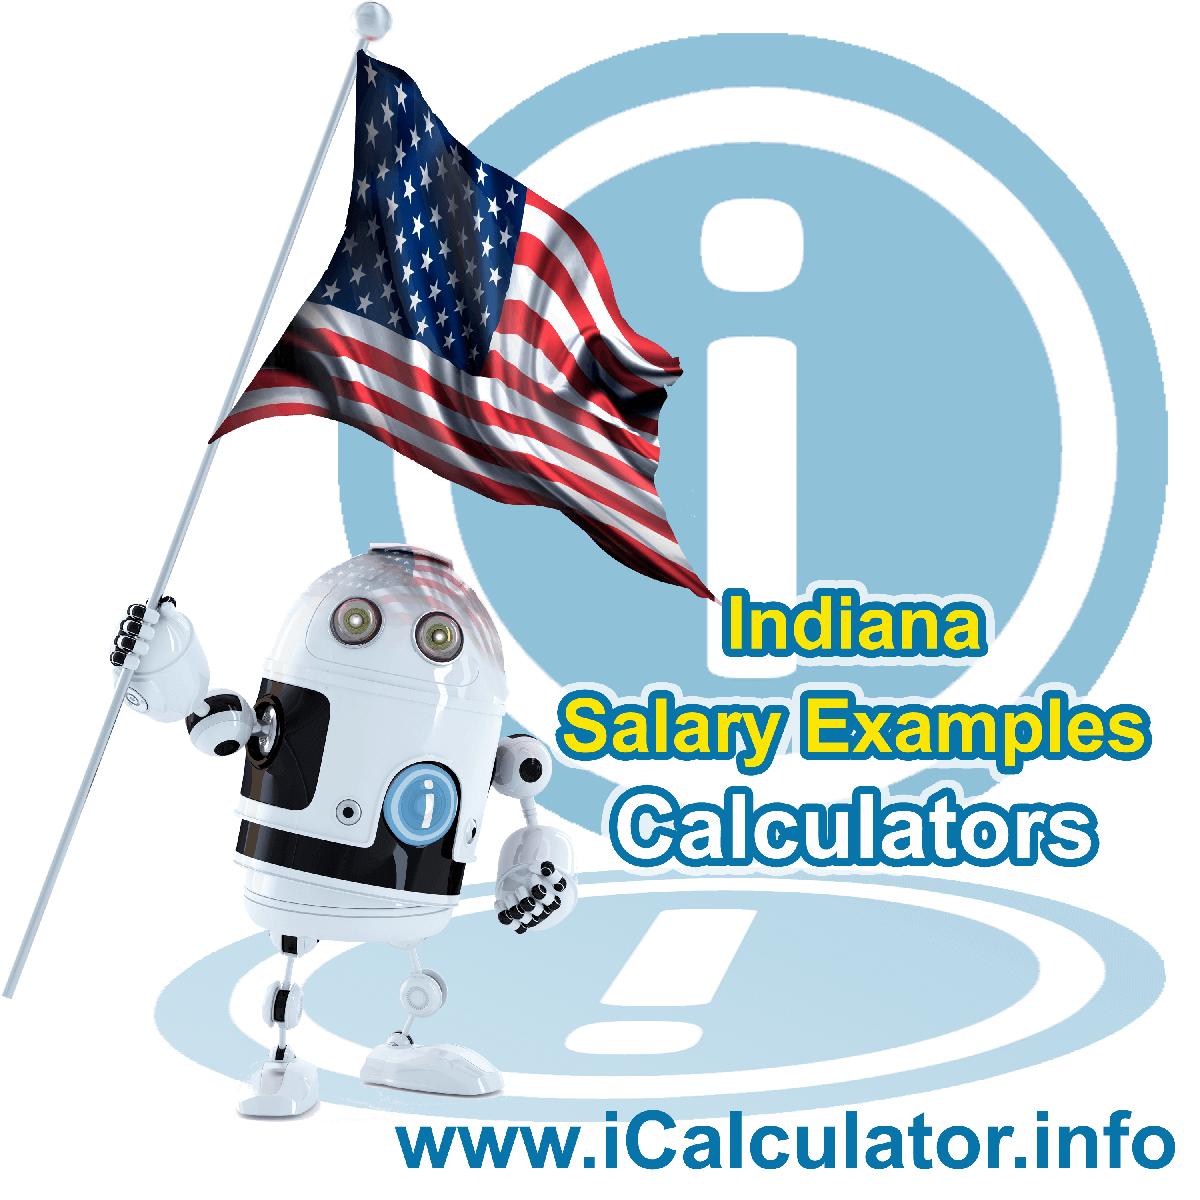 Indiana Salary Example for $270.00 in 2020 | iCalculator | $270.00 salary example for employee and employer paying Indiana State tincome taxes. Detailed salary after tax calculation including Indiana State Tax, Federal State Tax, Medicare Deductions, Social Security, Capital Gains and other income tax and salary deductions complete with supporting Indiana state tax tables